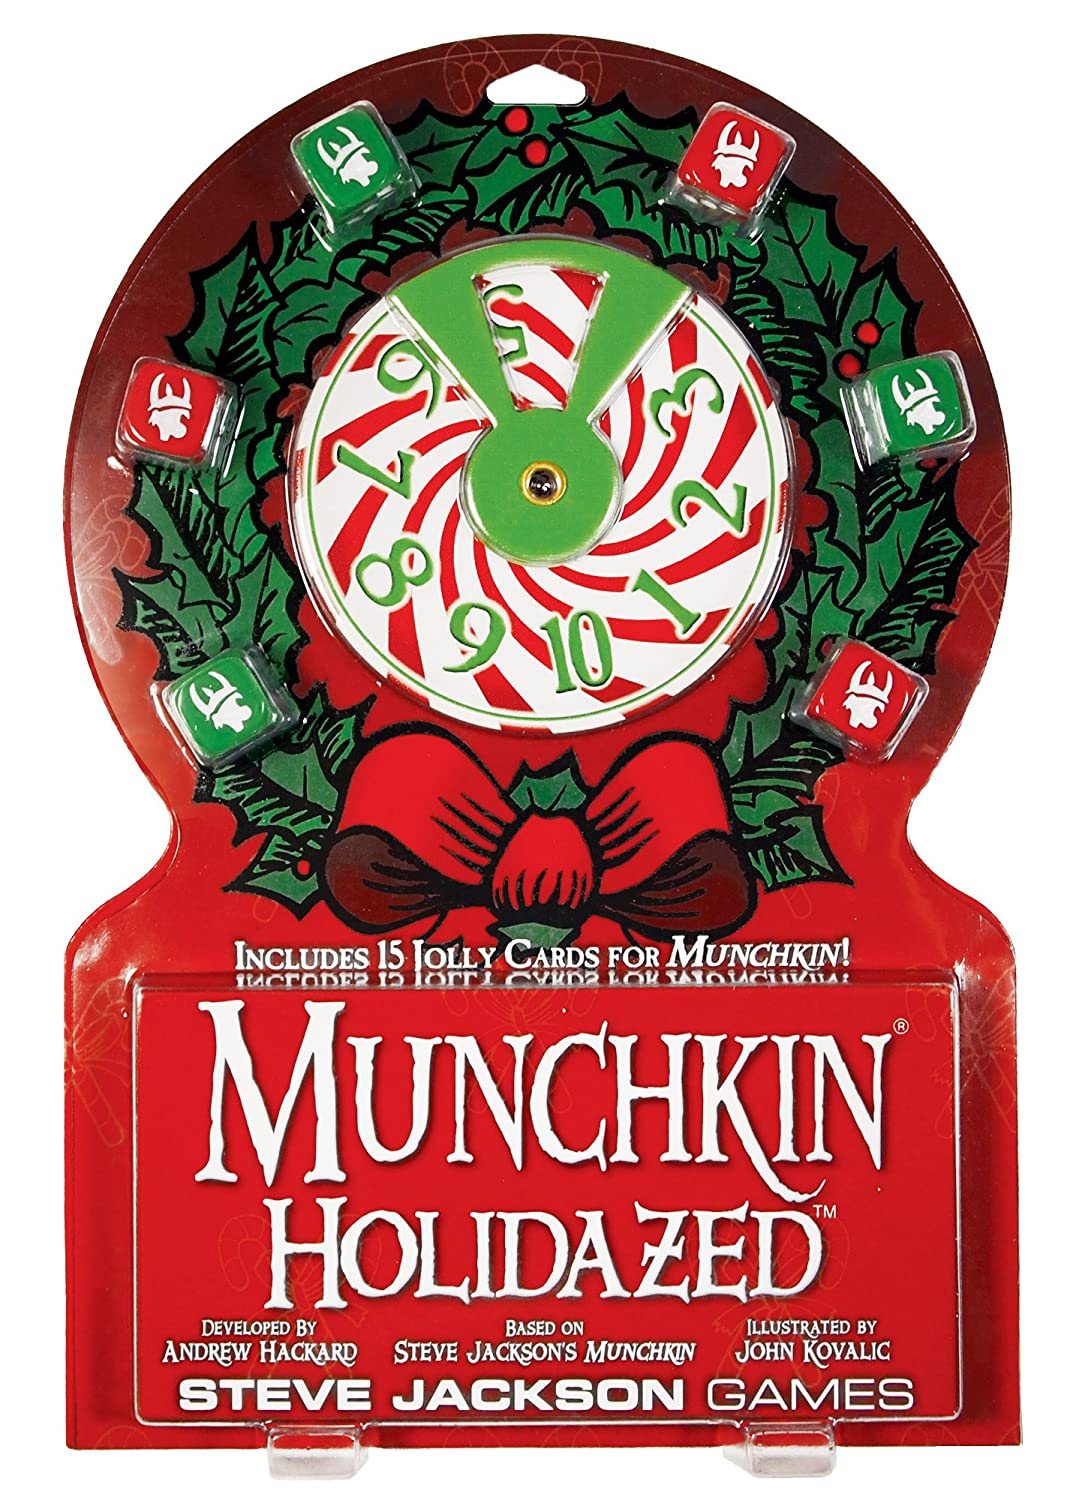 Amazon.com: Munchkin Holidazed Booster Card Game: Toys & Games